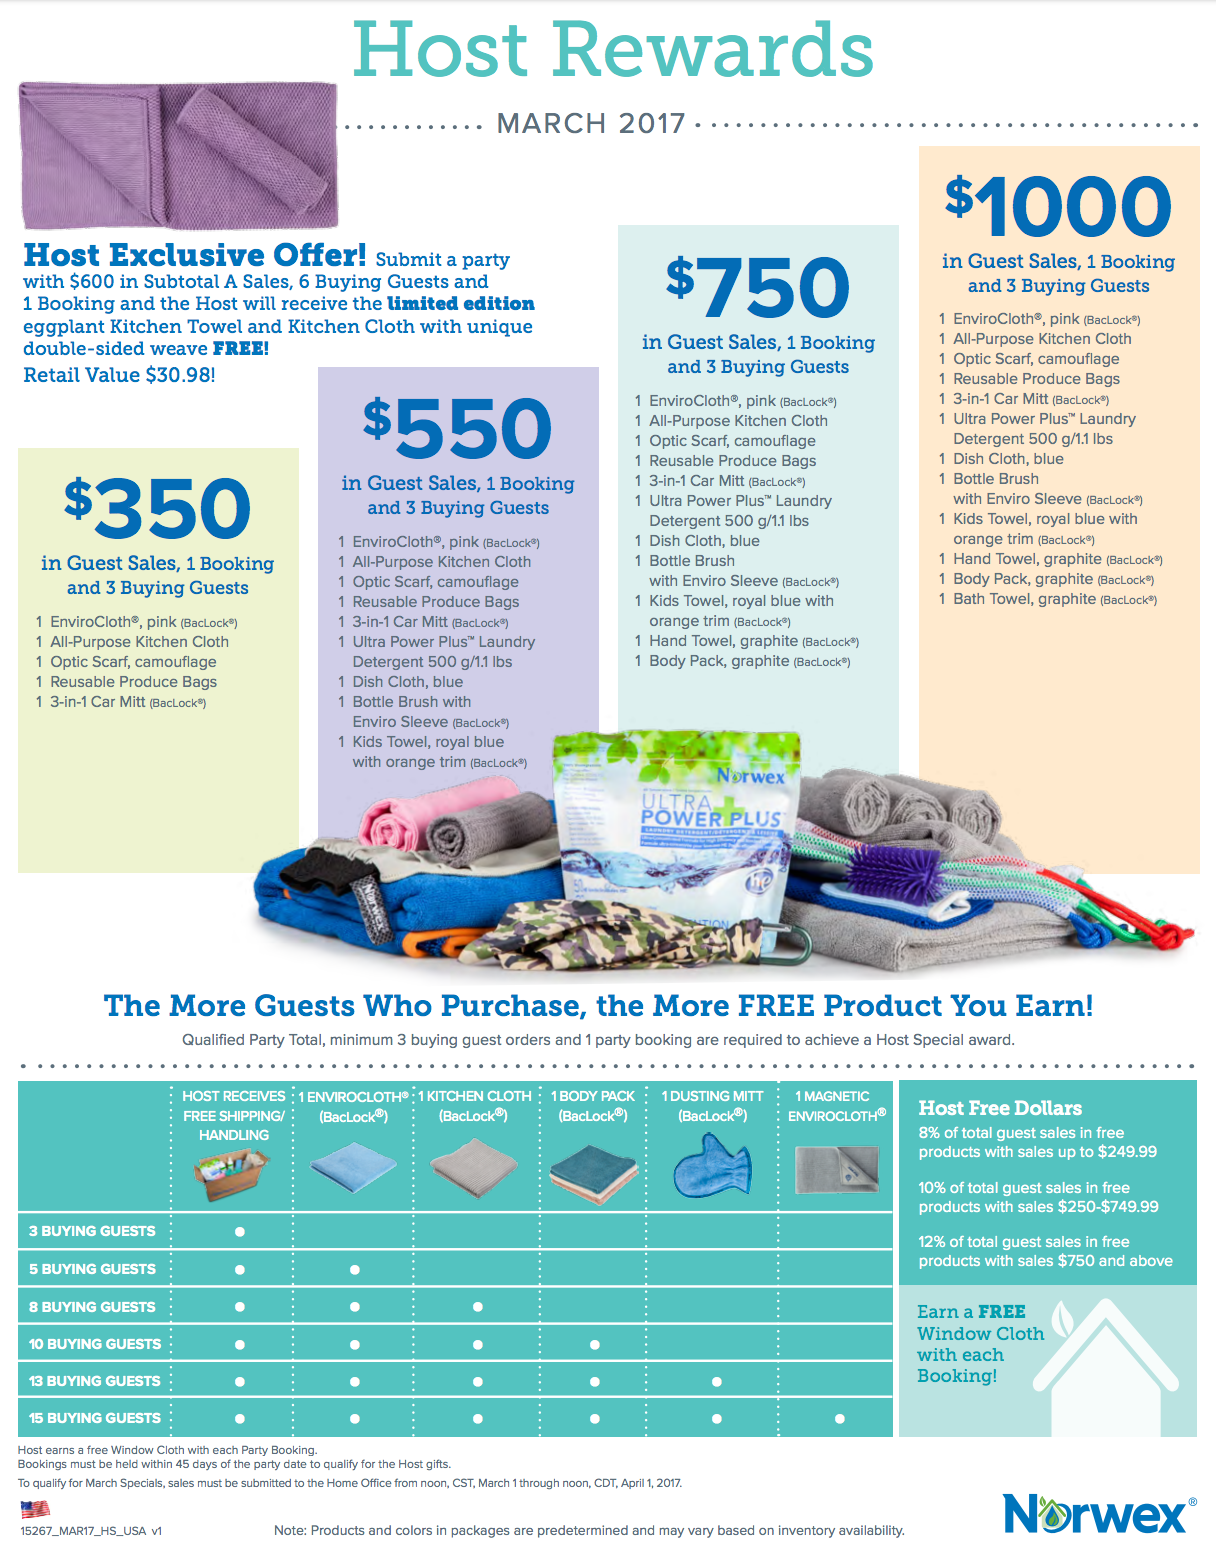 Norwex Hostess and Consultant Specials for March 2017